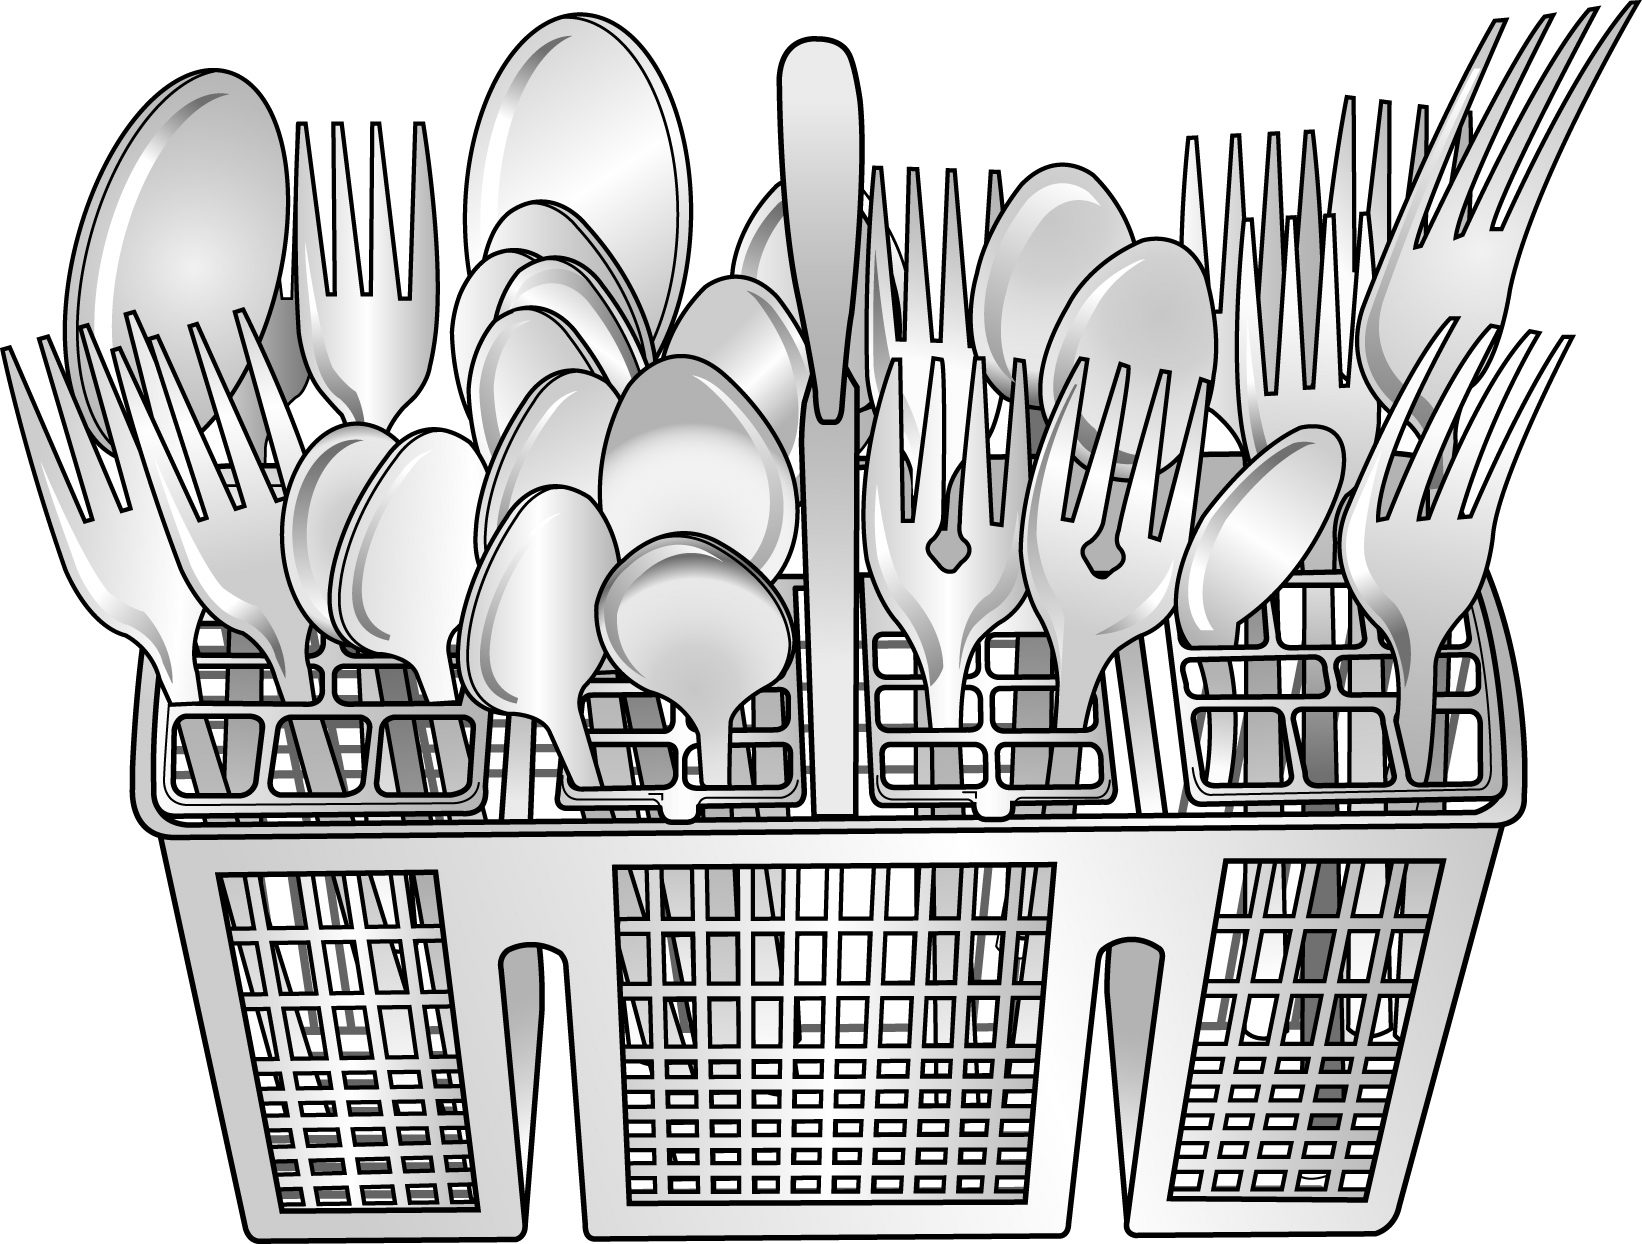 Cliparts download clip art. Free clipart dirty silverware in the dishwasher